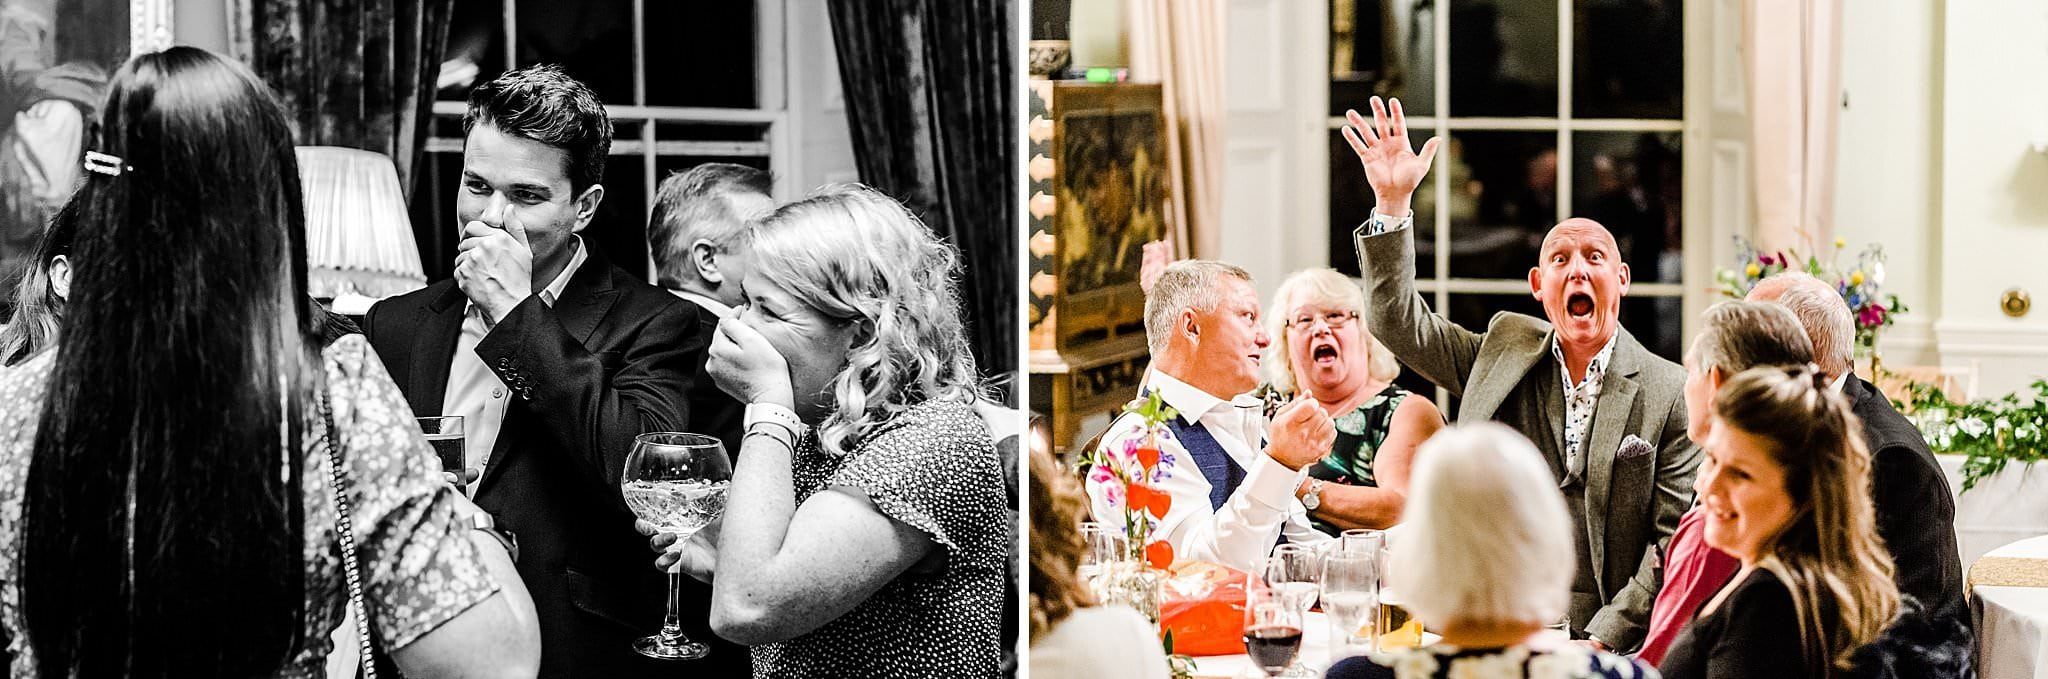 Candid guests caught joking around and having fun at Prestwold Hall